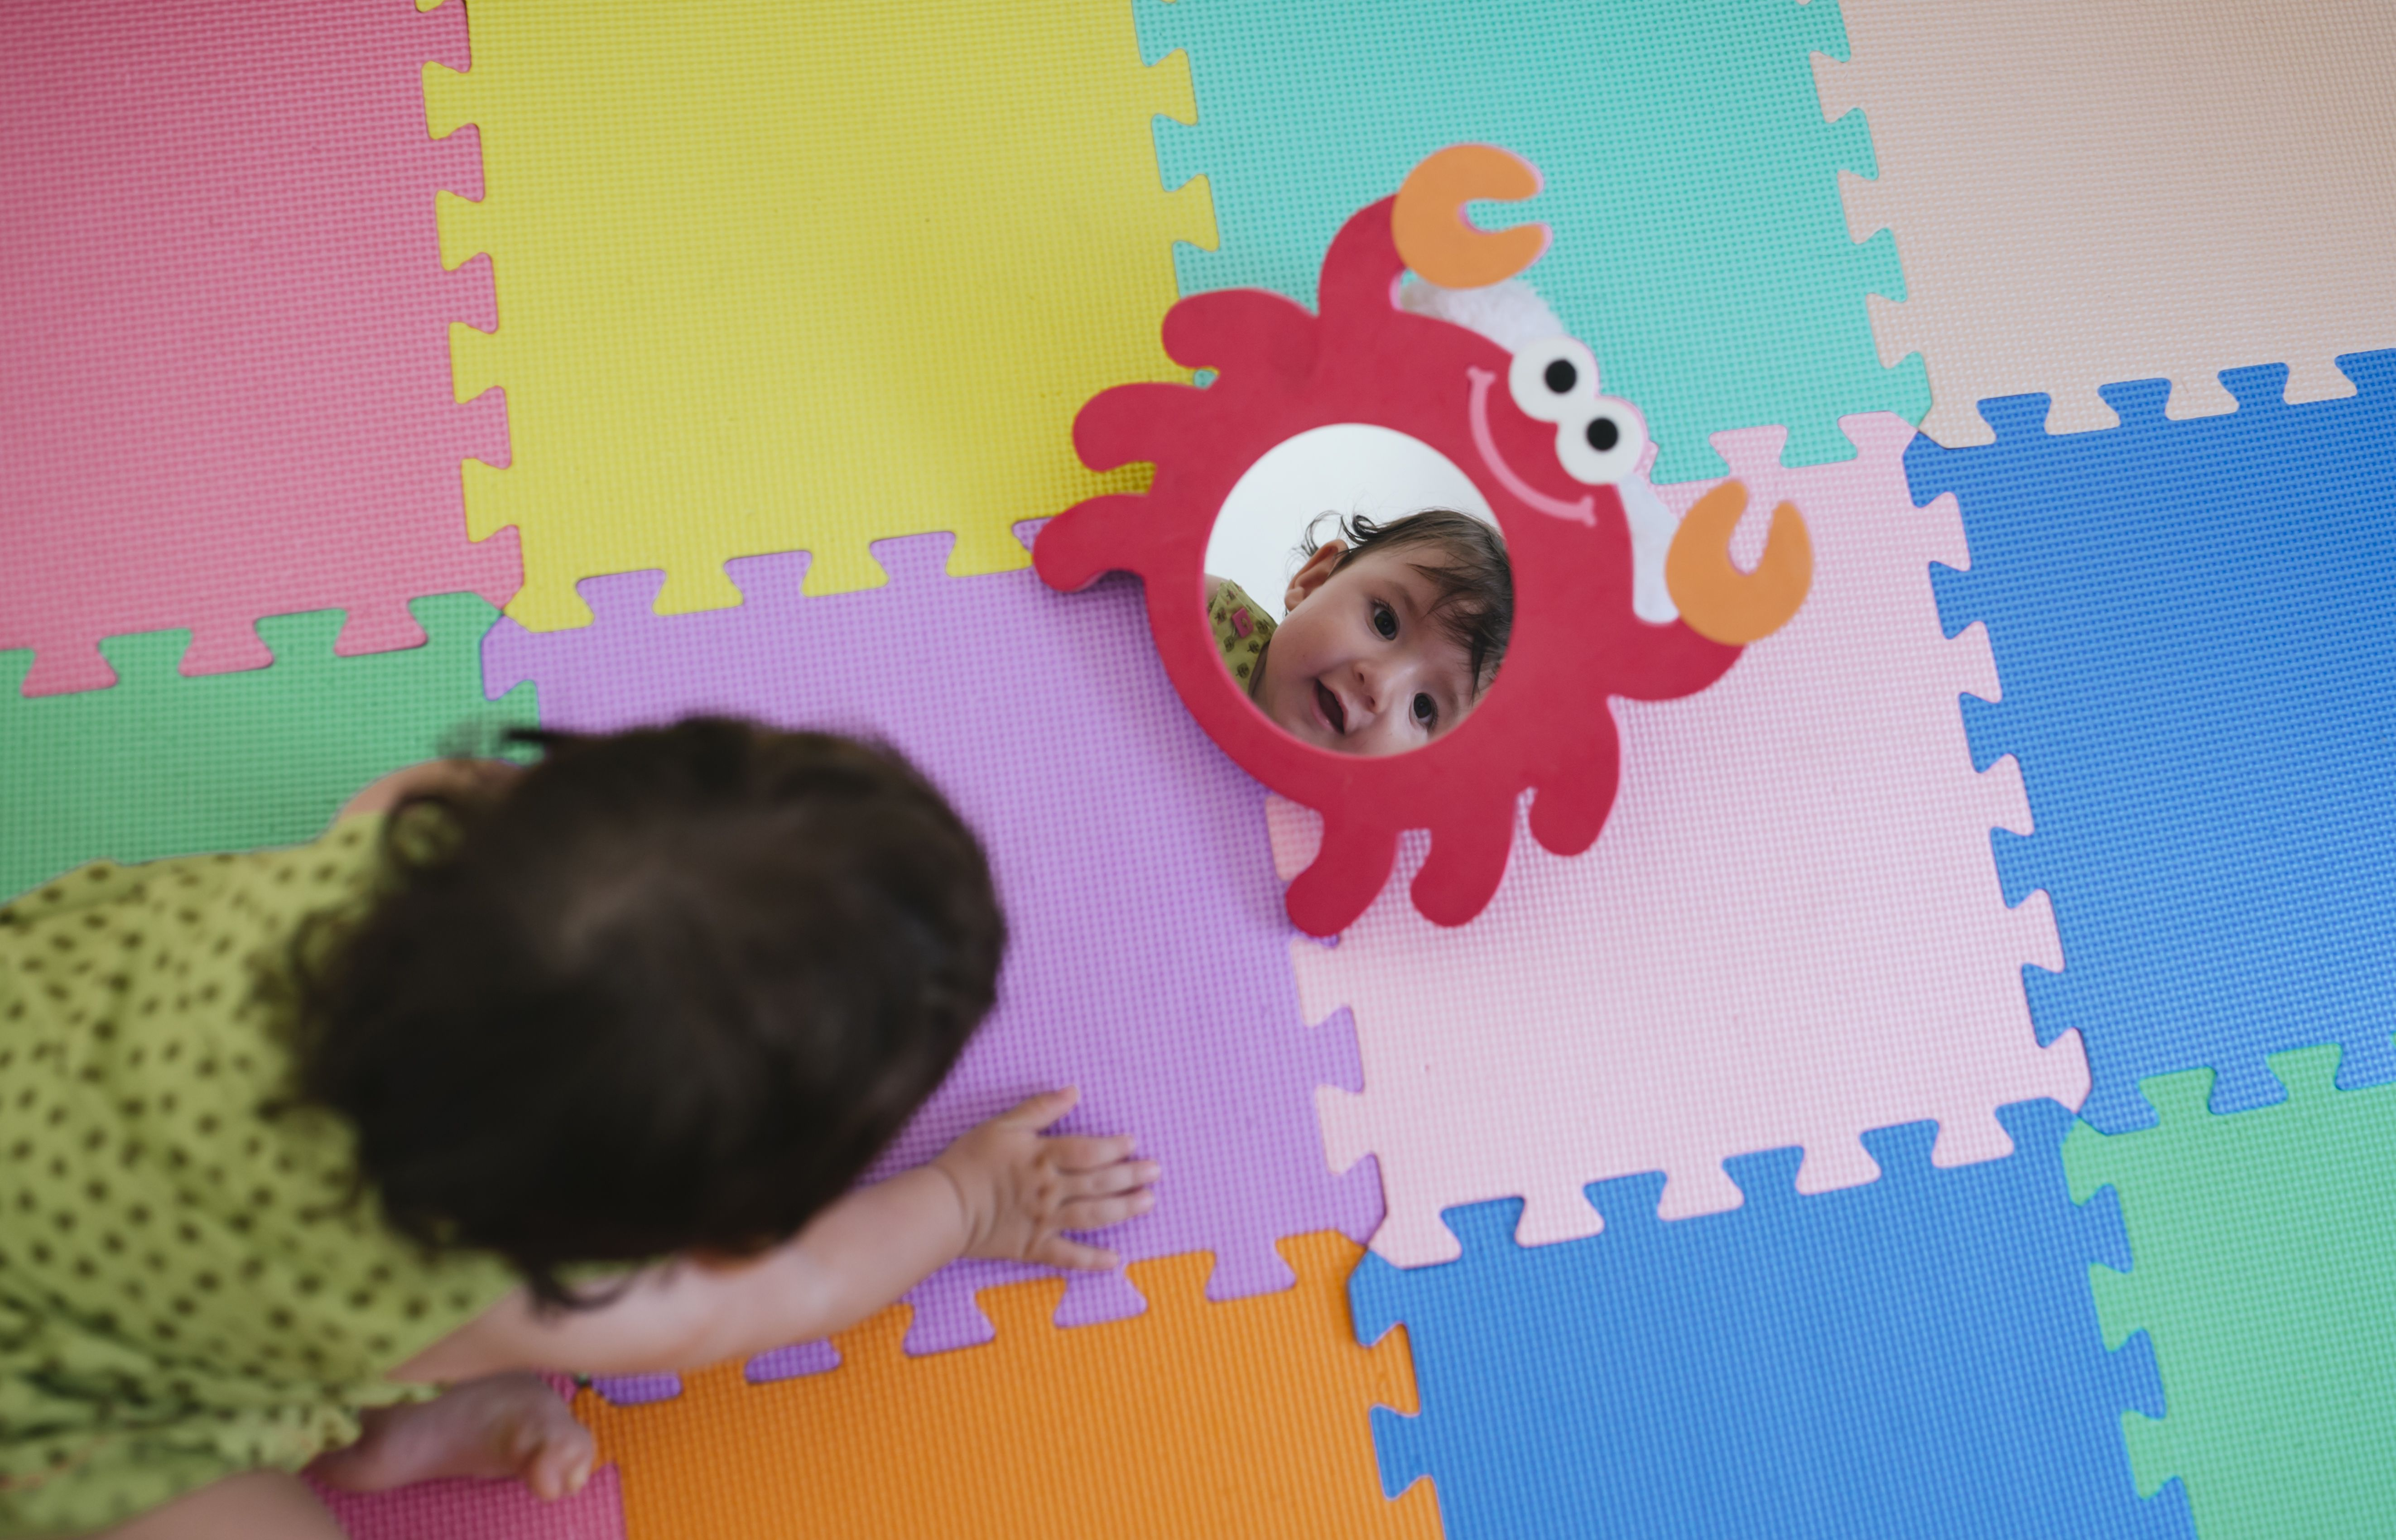 Cute baby girl looking at herself in a toy mirror on a colorful puzzle floor mat